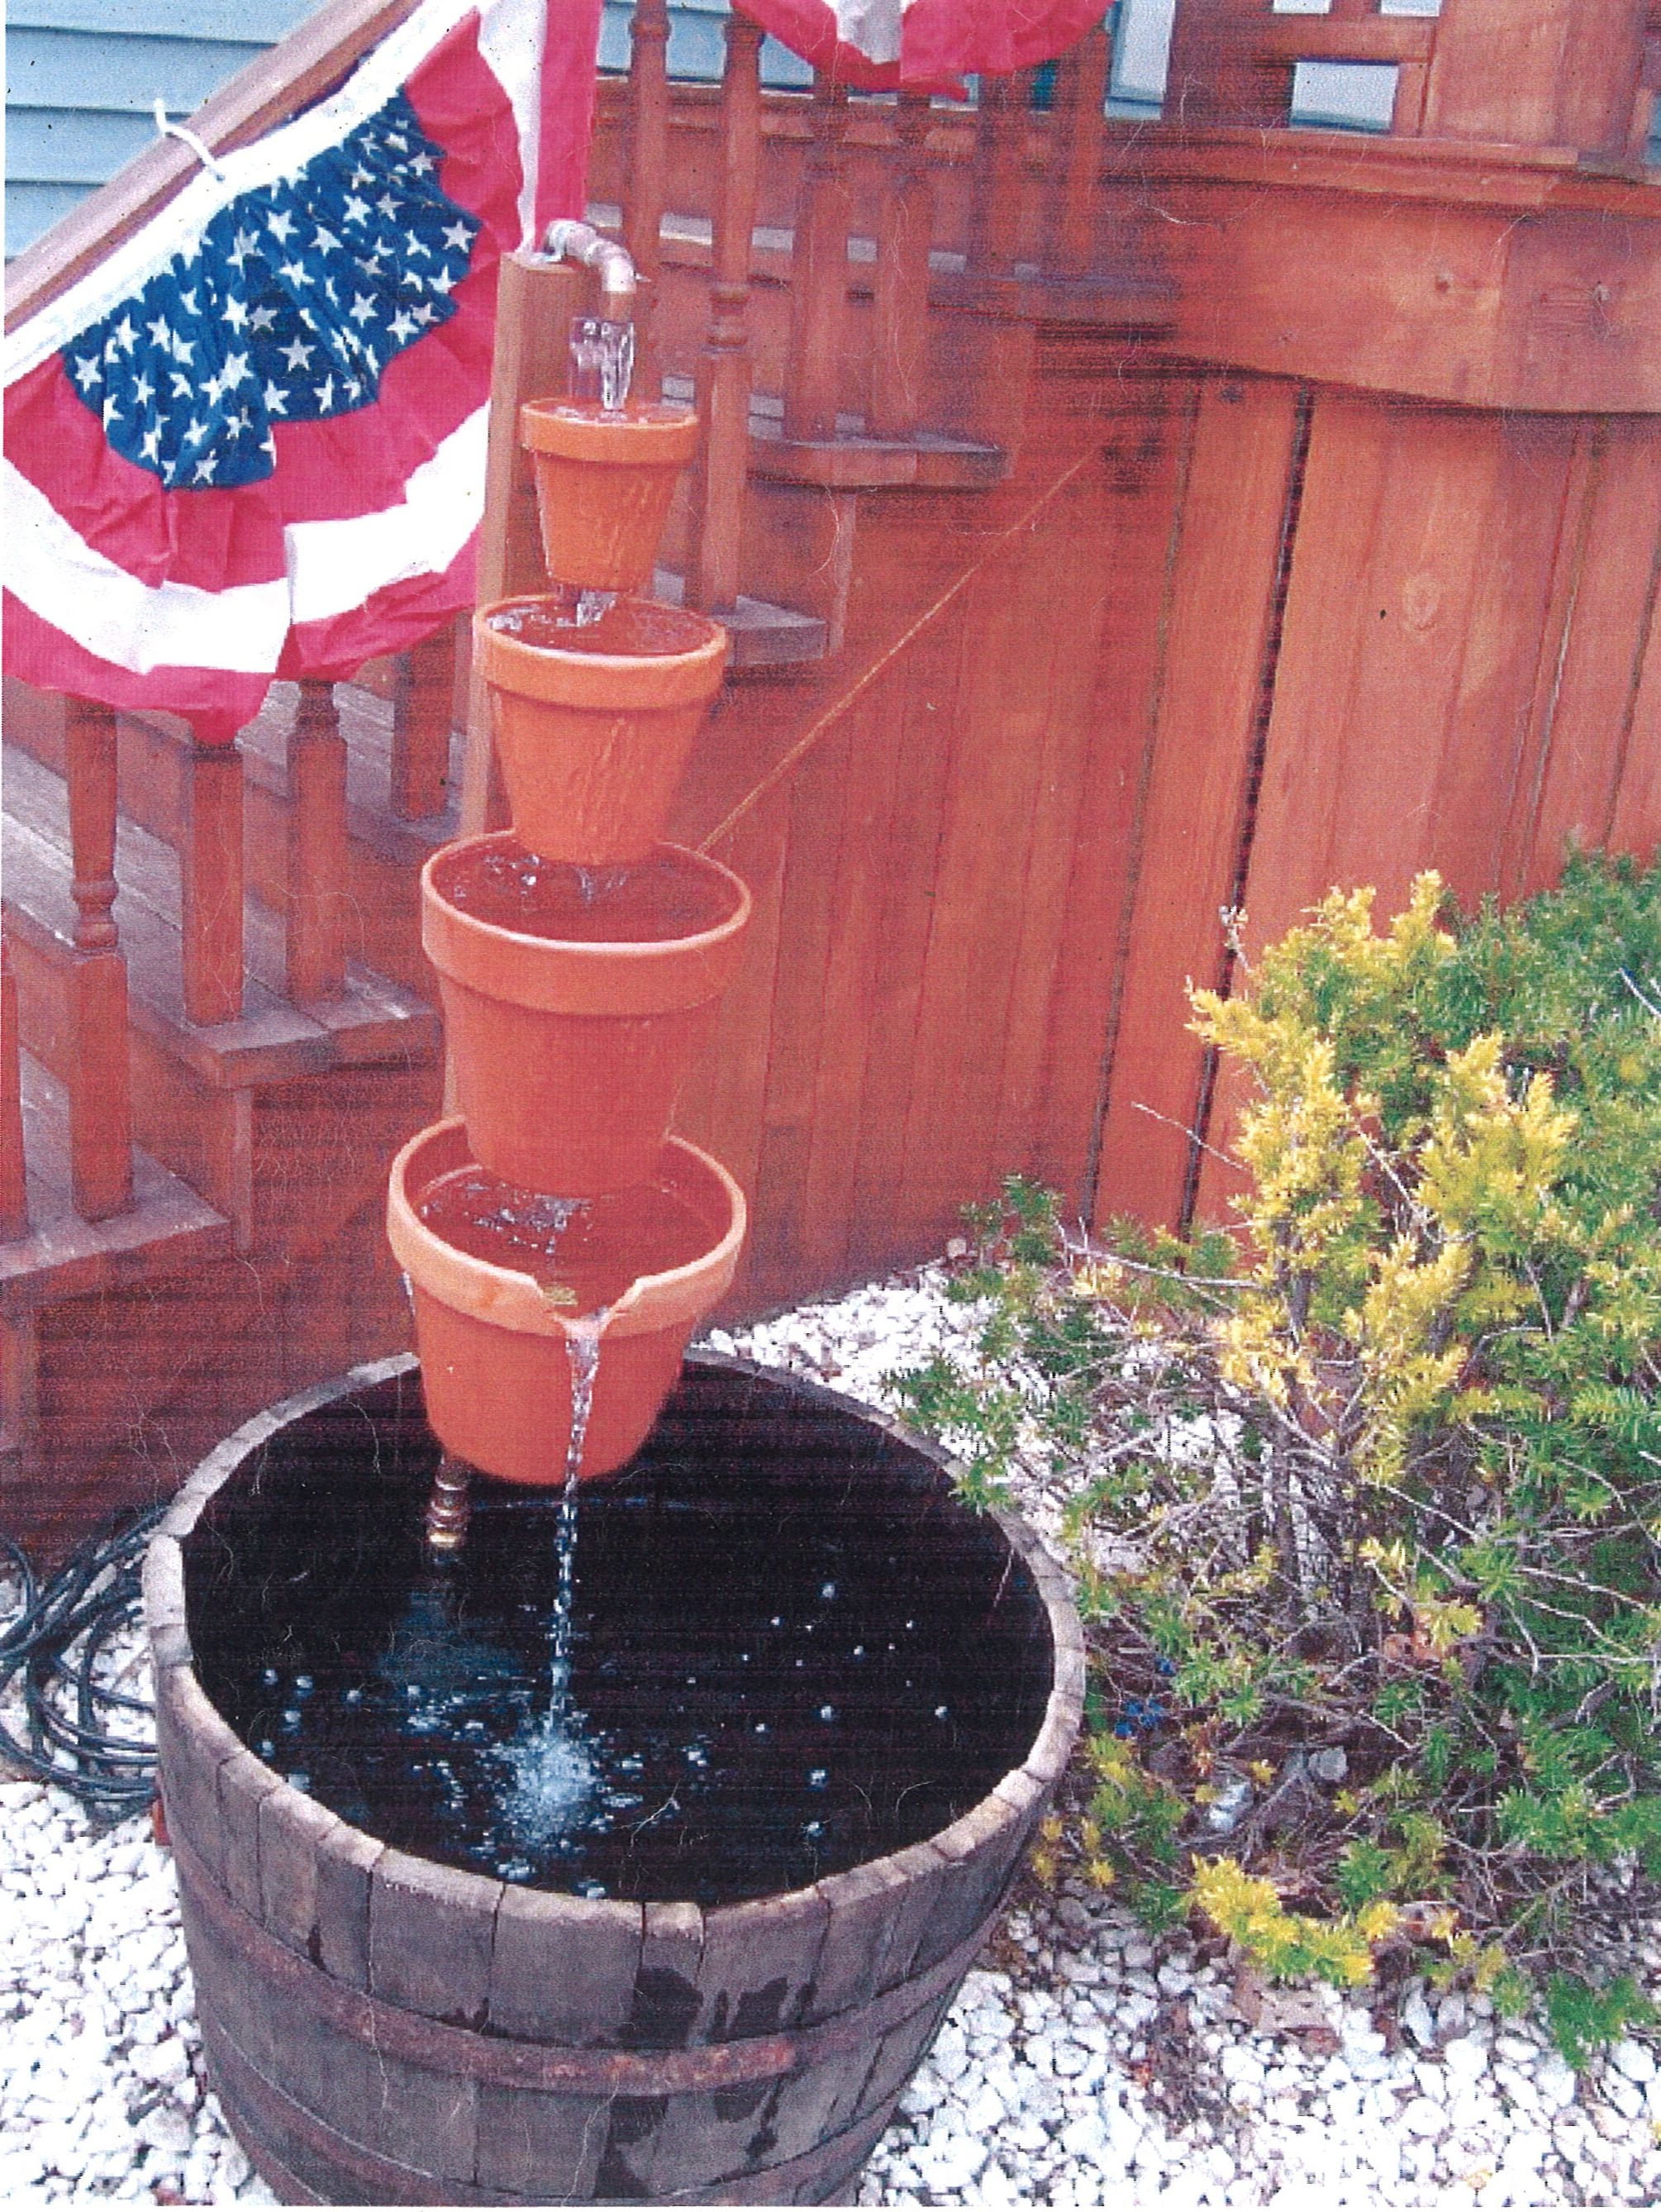 Diy Waterfall Clay Pot Fountain Great Project For Kids Dad Or Grandpa One Size Fits All Unique Garden Art Diy Water Fountain Indoor Water Fountains